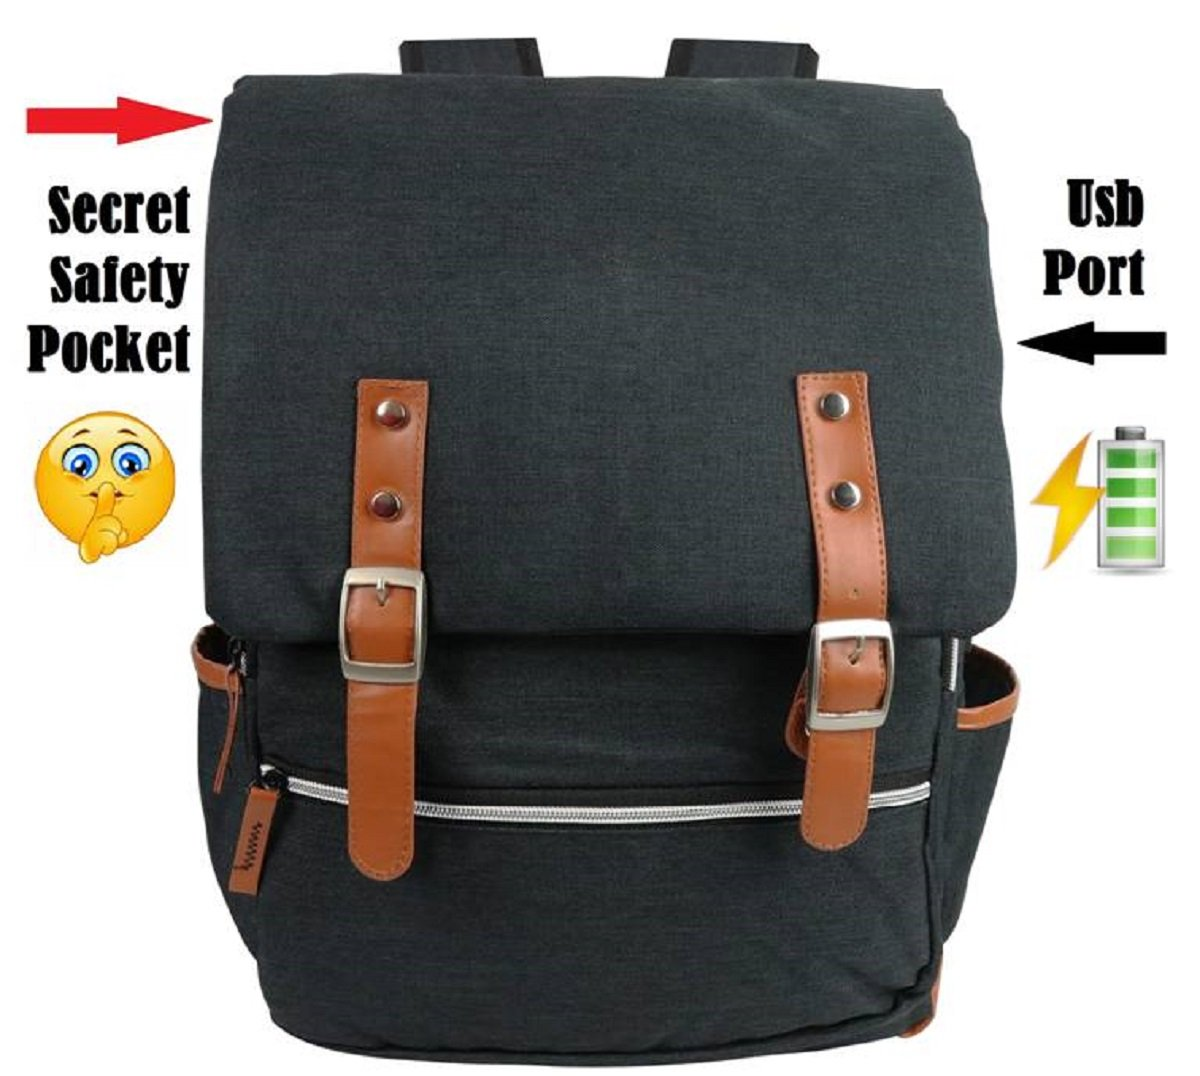 Laptop Backpack - 15.6 Inch Computer Bag Waterproof, Canvas Rucksack w/USB Charging Port and a Secret Safety Pocket. Slim, Retro Style 4 Men & Women for Office or School. Chic Black.